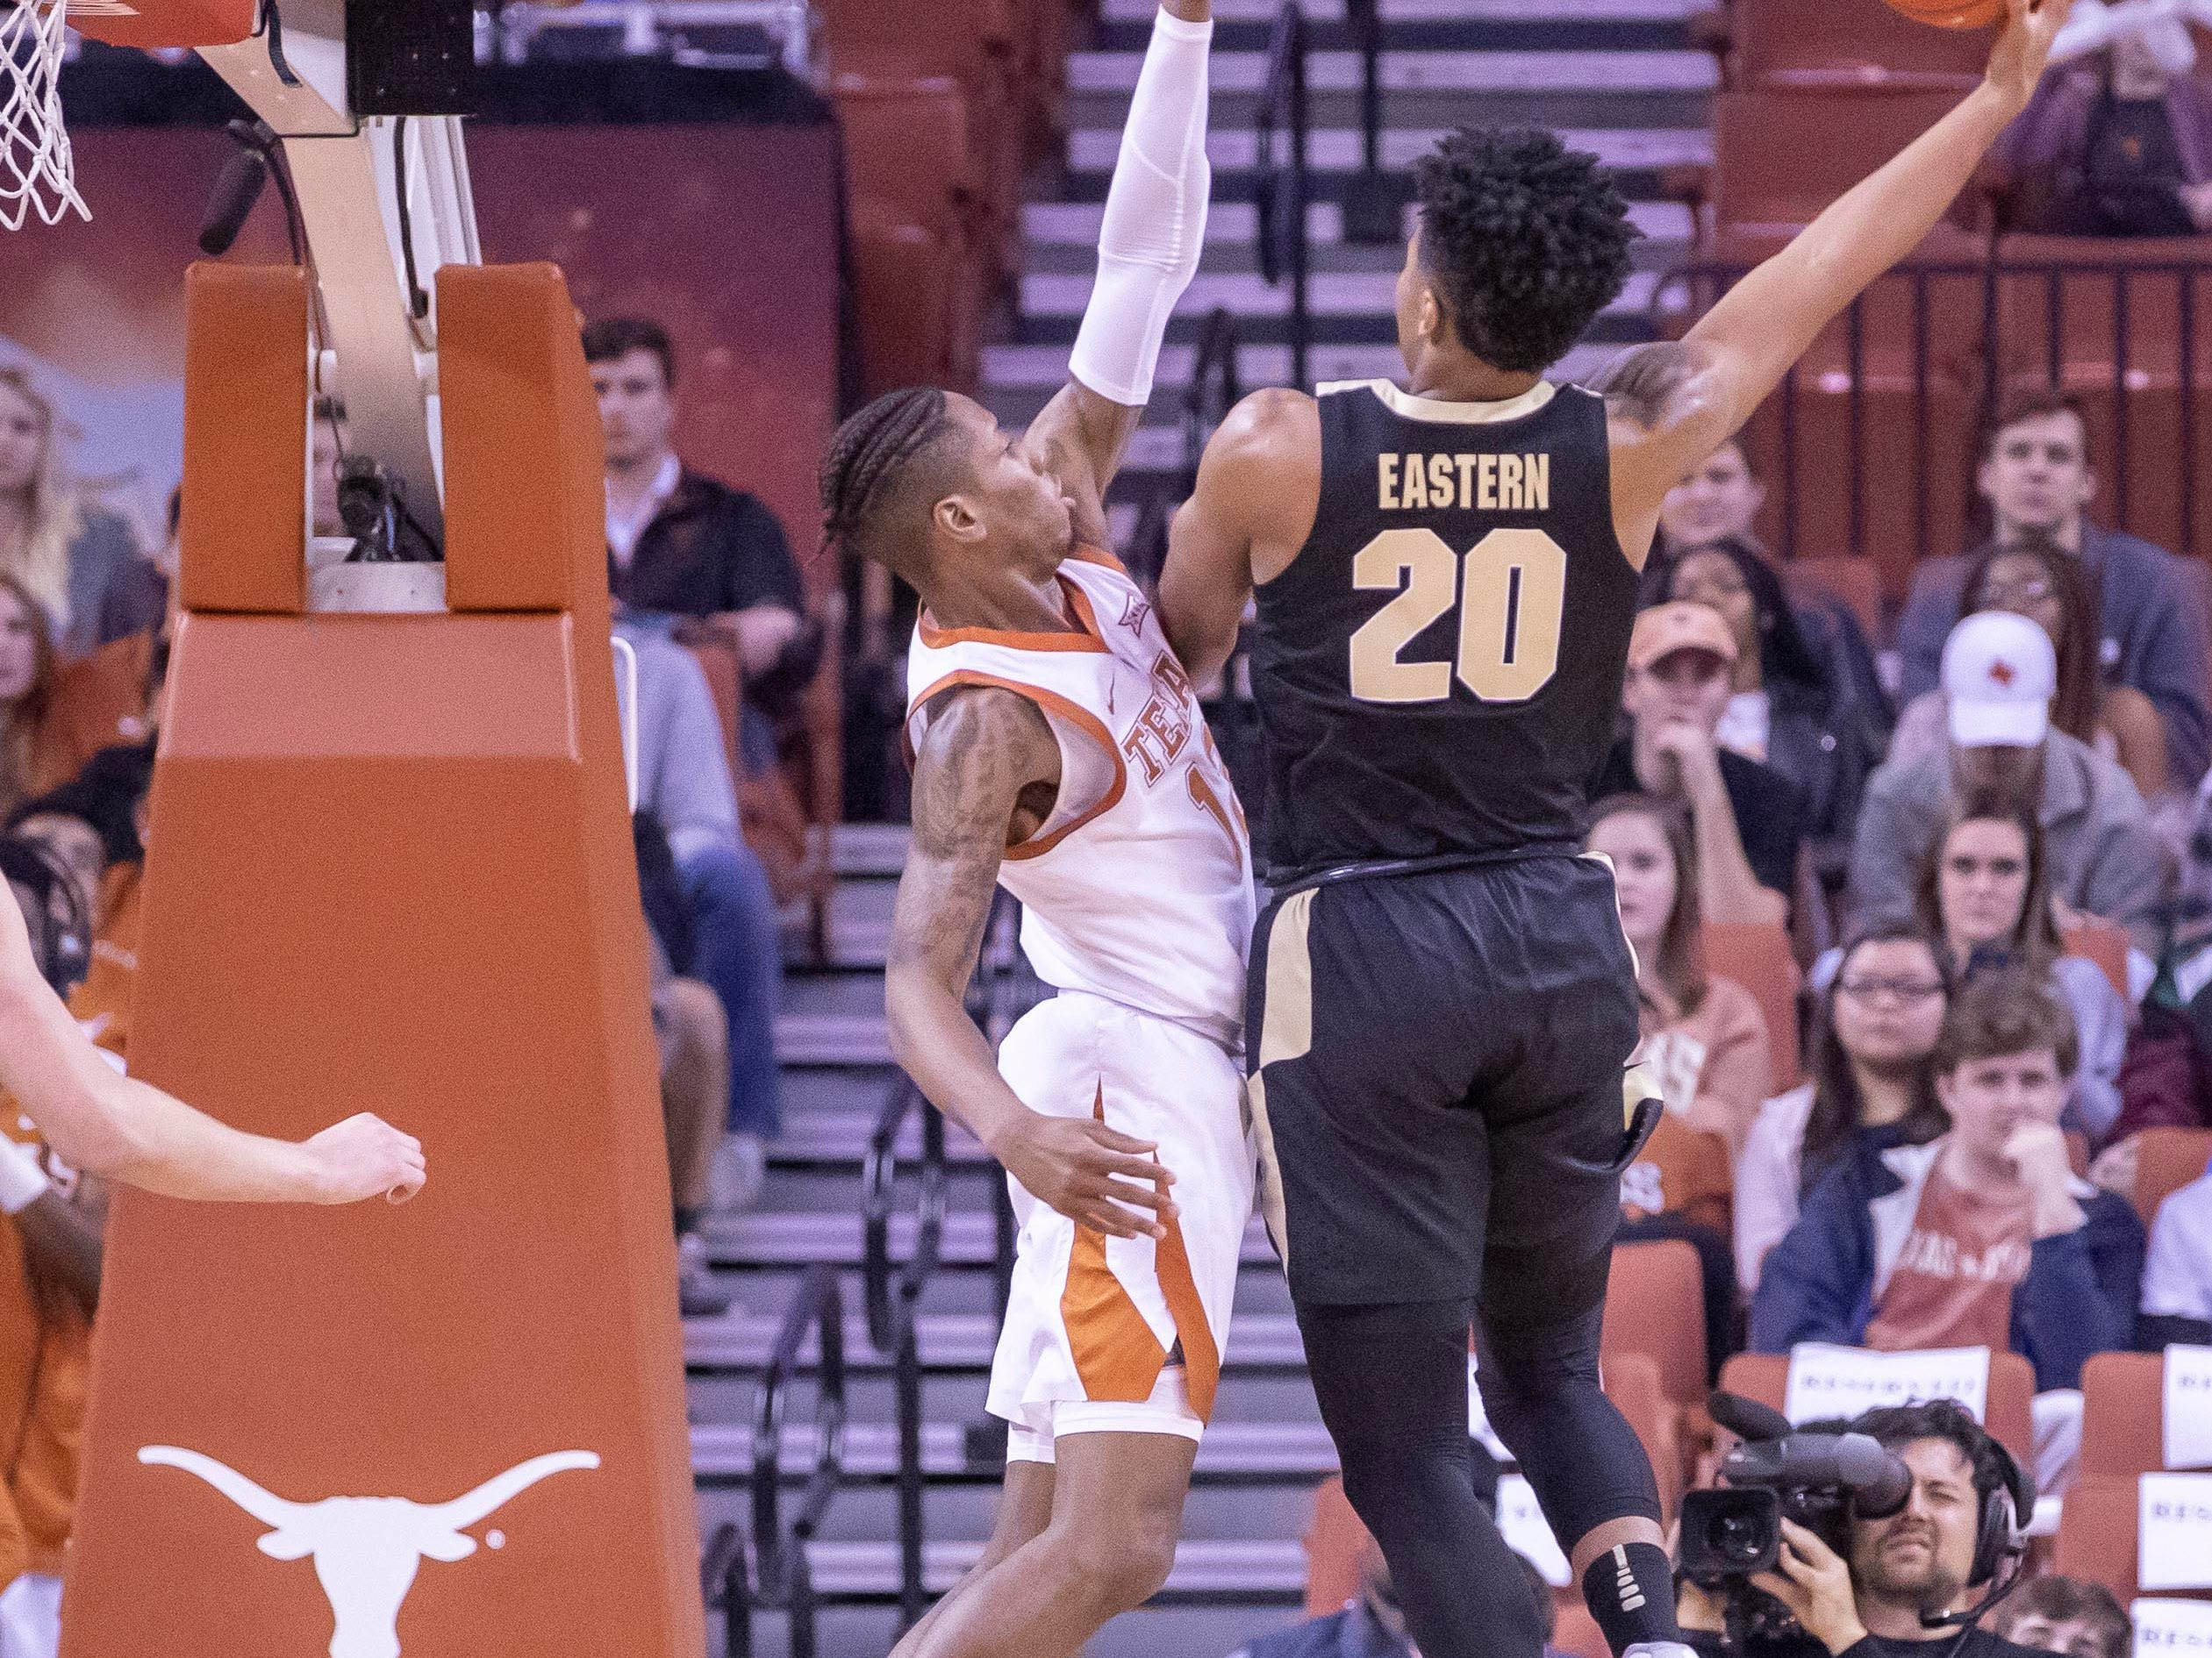 Dec 9, 2018; Austin, TX, USA; Purdue Boilermakers guard Nojel Eastern (20) shoots against the Texas Longhorns during the first half at Frank Erwin Center. Mandatory Credit: John Gutierrez-USA TODAY Sports